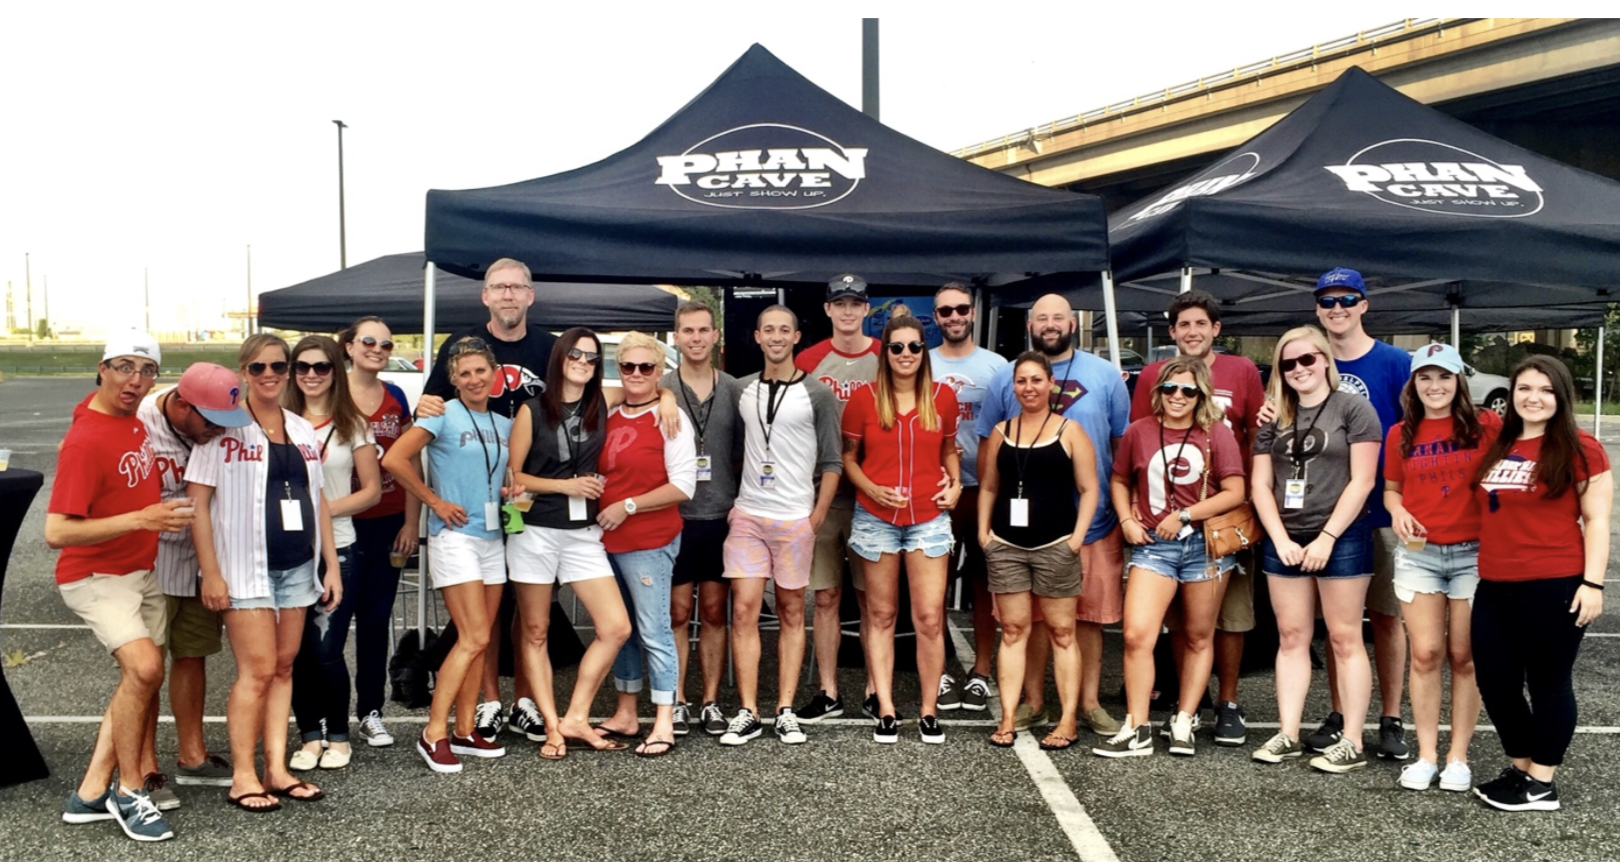 Phillies tailgate with significant others 2016